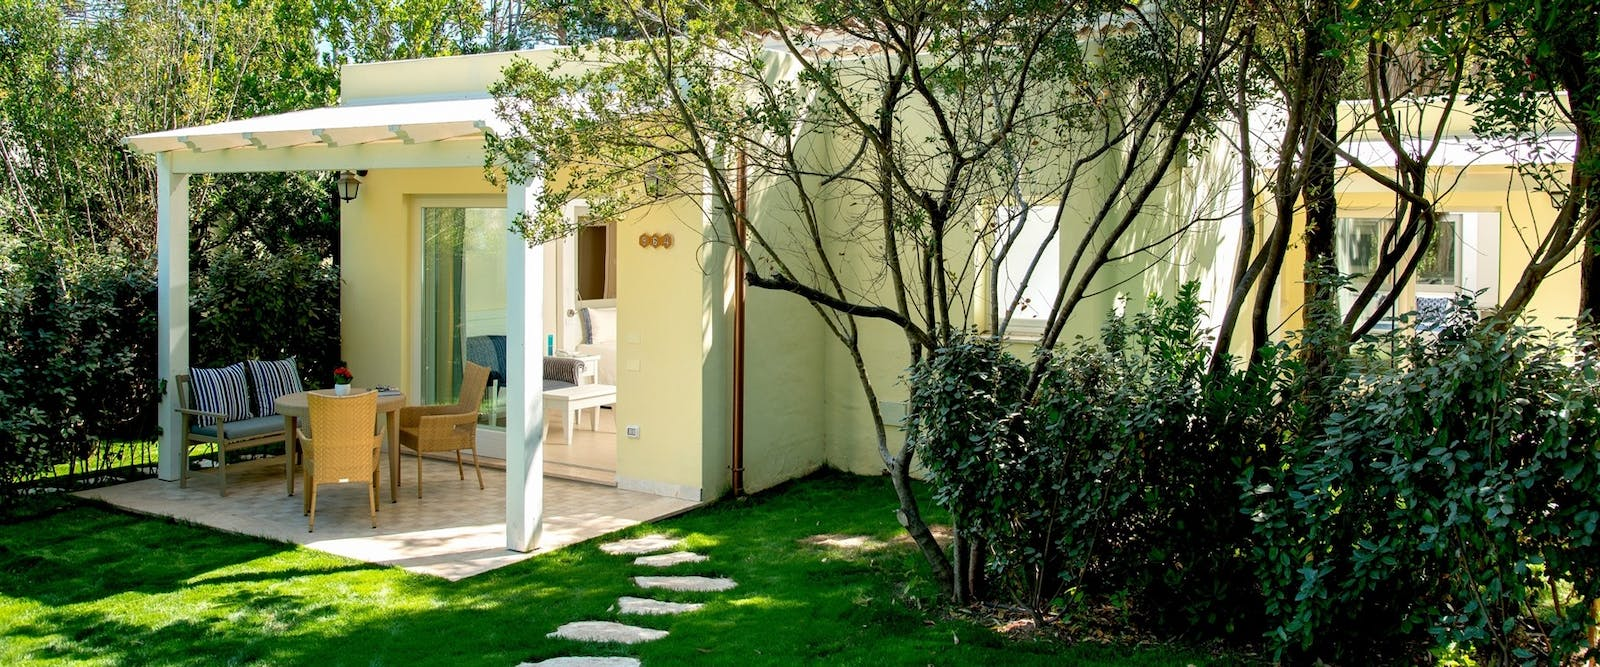 Deluxe Bungalow Exterior at Forte Village Hotel Bouganville, South Sardinia, Italy